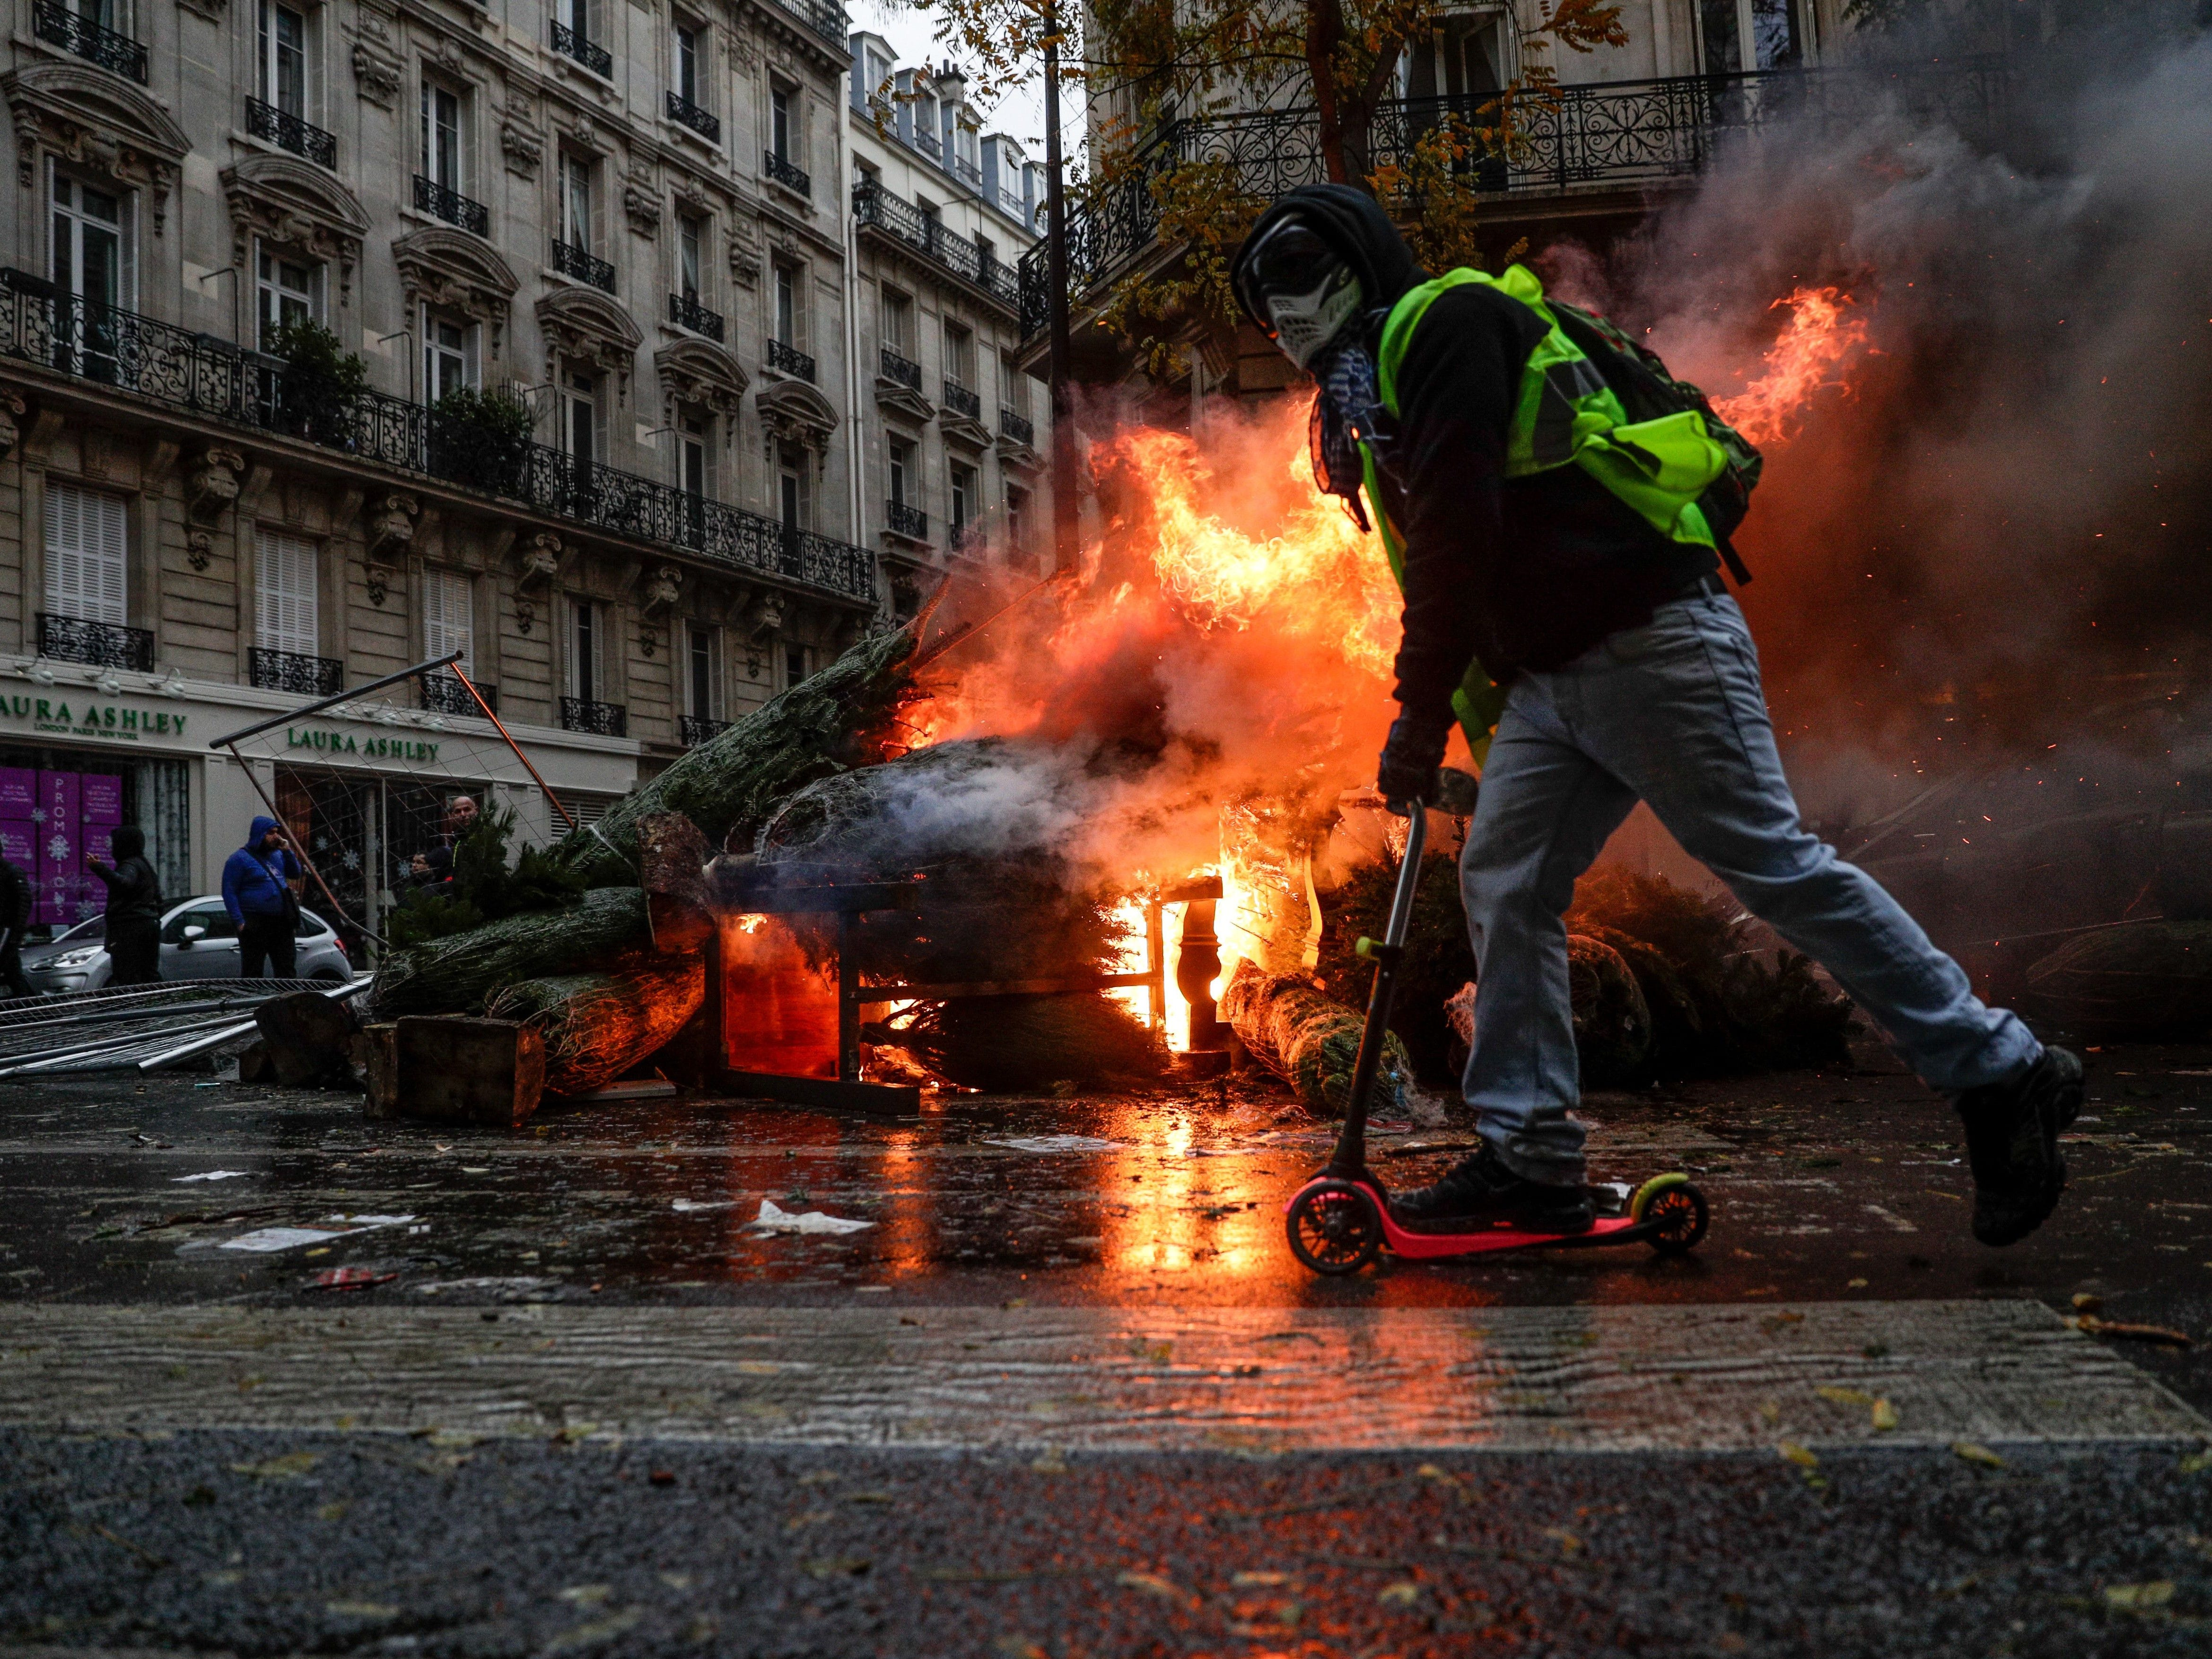 TOPSHOT - A demonstrator rides past a fire during a protest of Yellow vests (Gilets jaunes) against rising oil prices and living costs, on December 1, 2018 in Paris. - Speaking at the Paris police's command centre, French Prime Minister said 36,000 people were protesting across France, including 5,500 in the capital for this 3rd nationwide day of blockade ands demos.